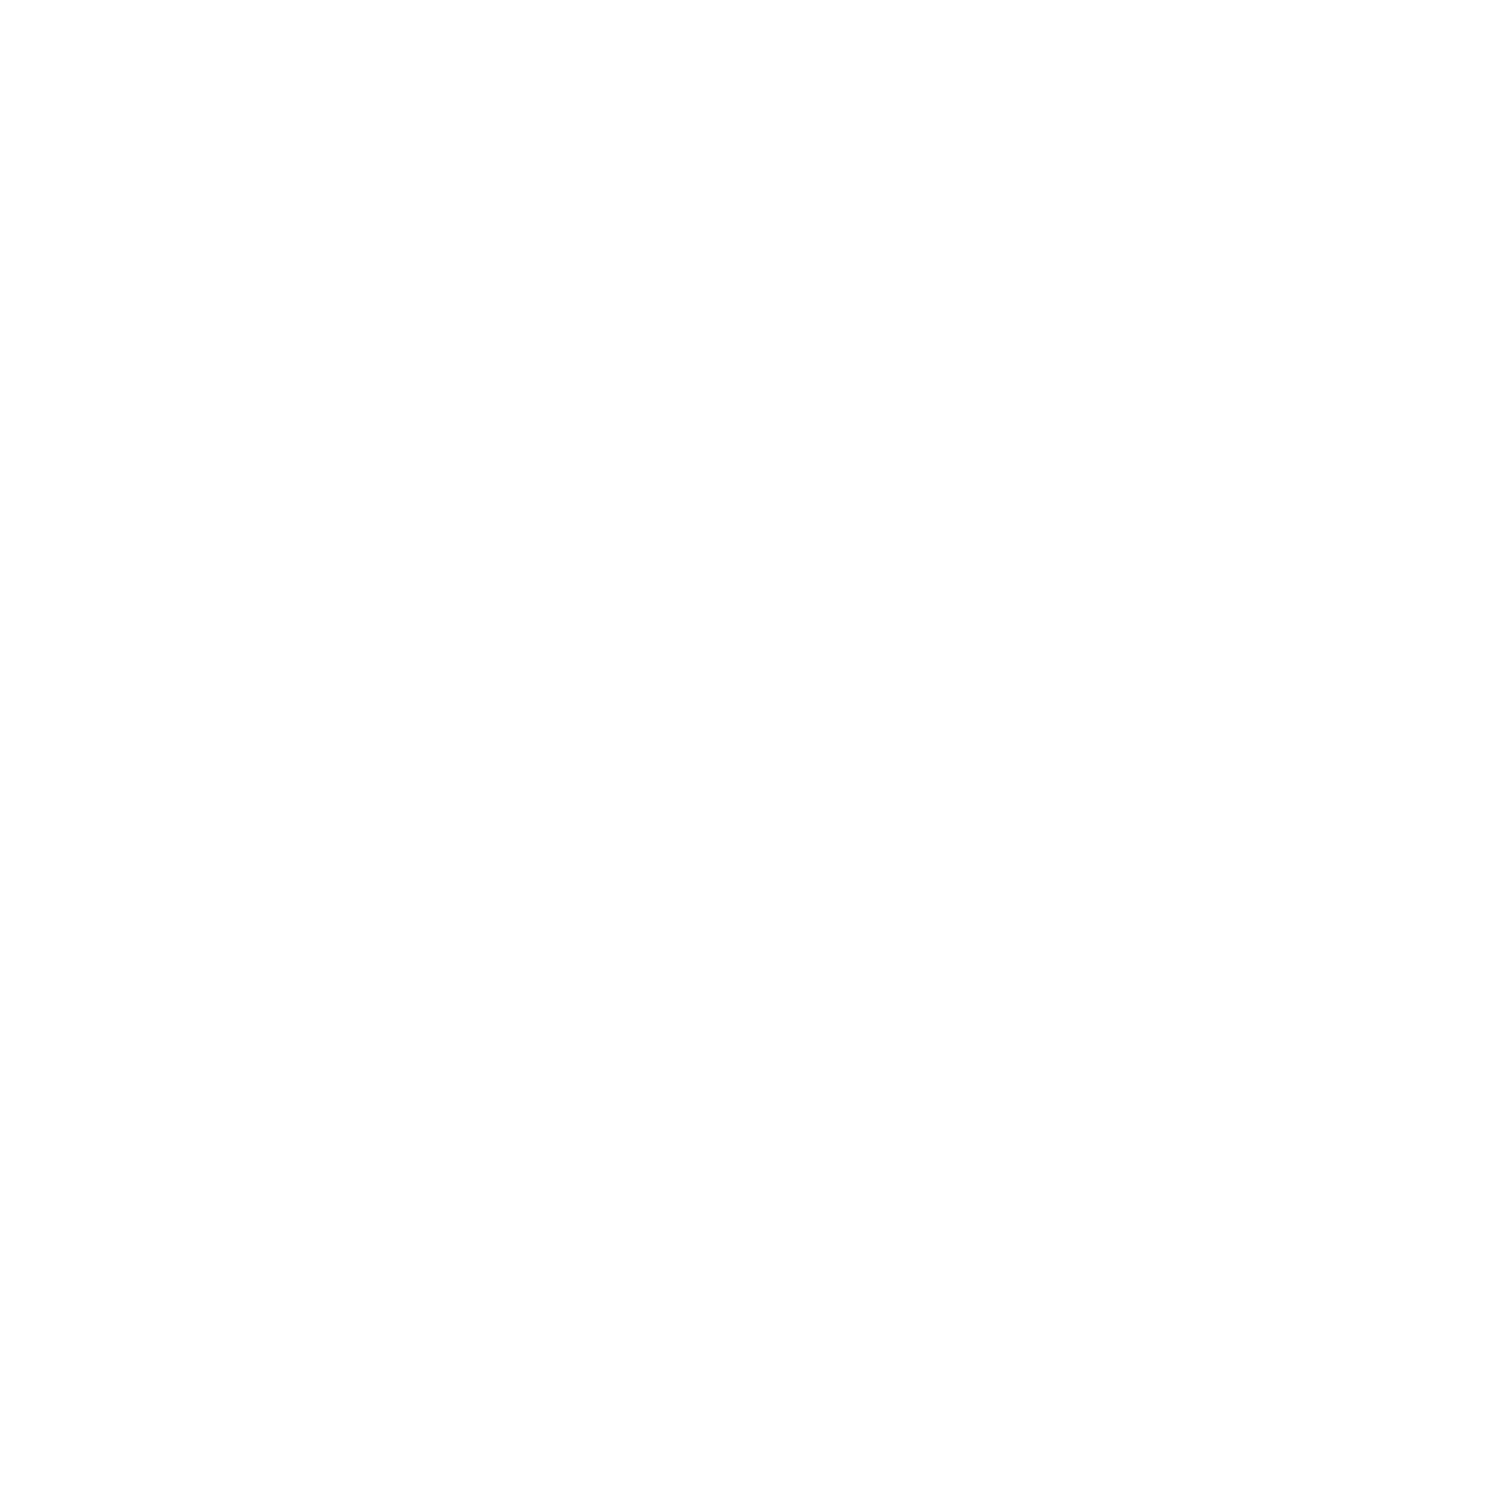 Electropositive  |  Social Innovation + Coworking